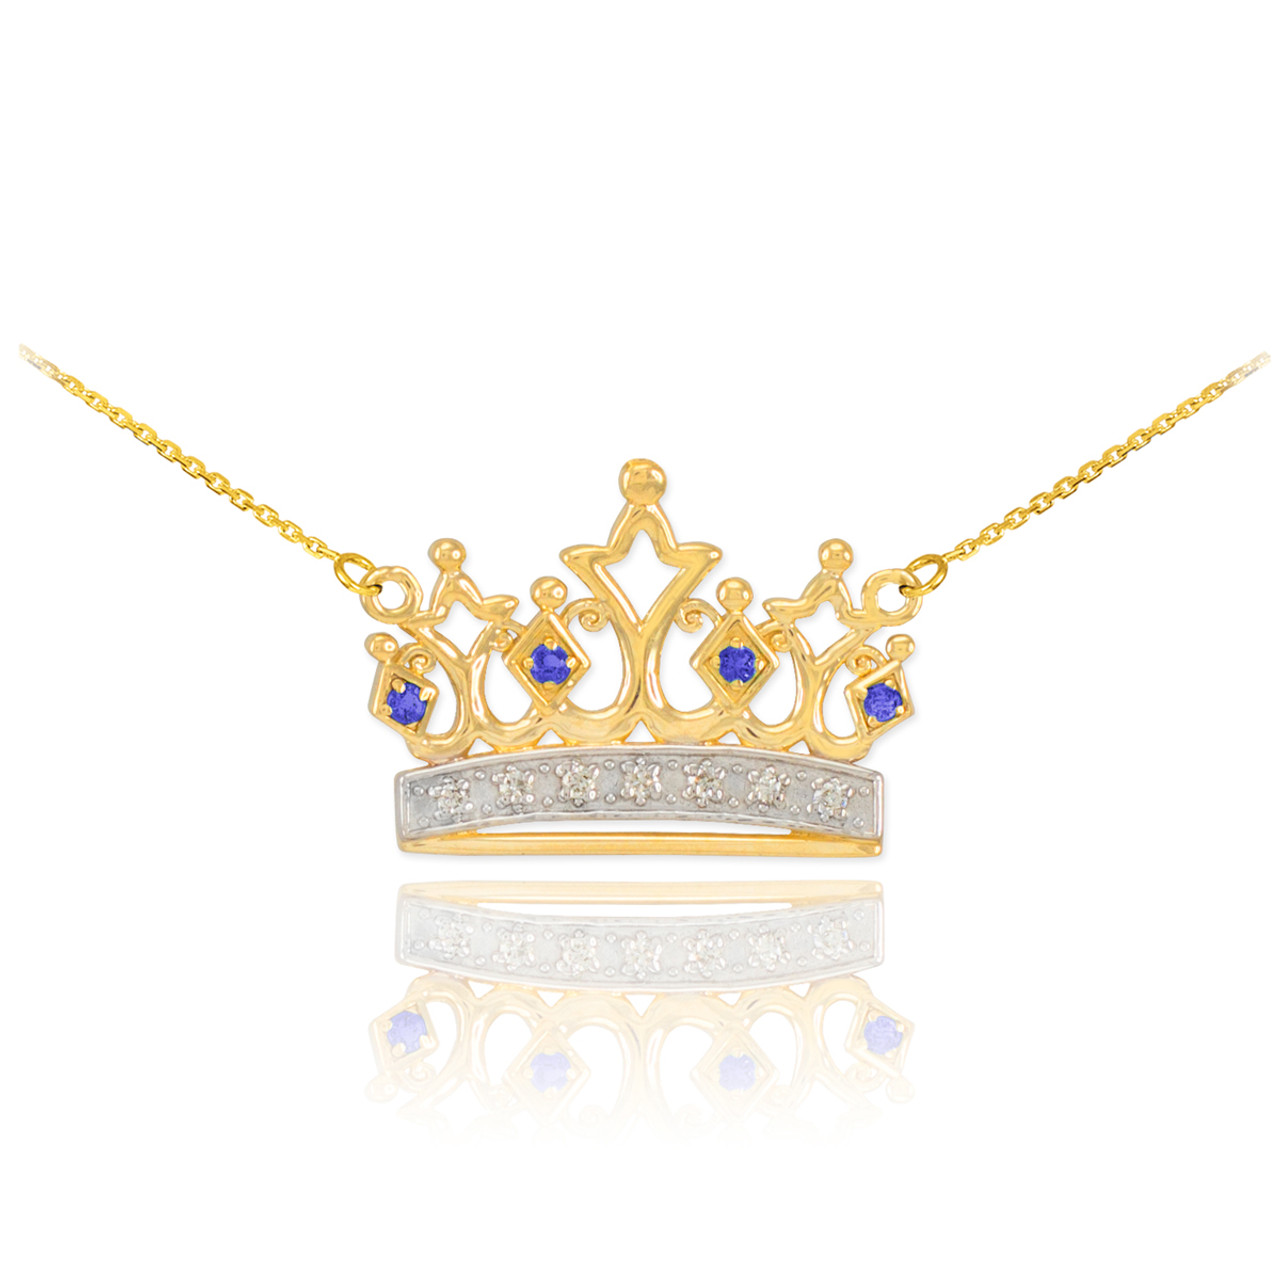 crown royal victoria buy a official palace queen pendant buckingham gold necklace